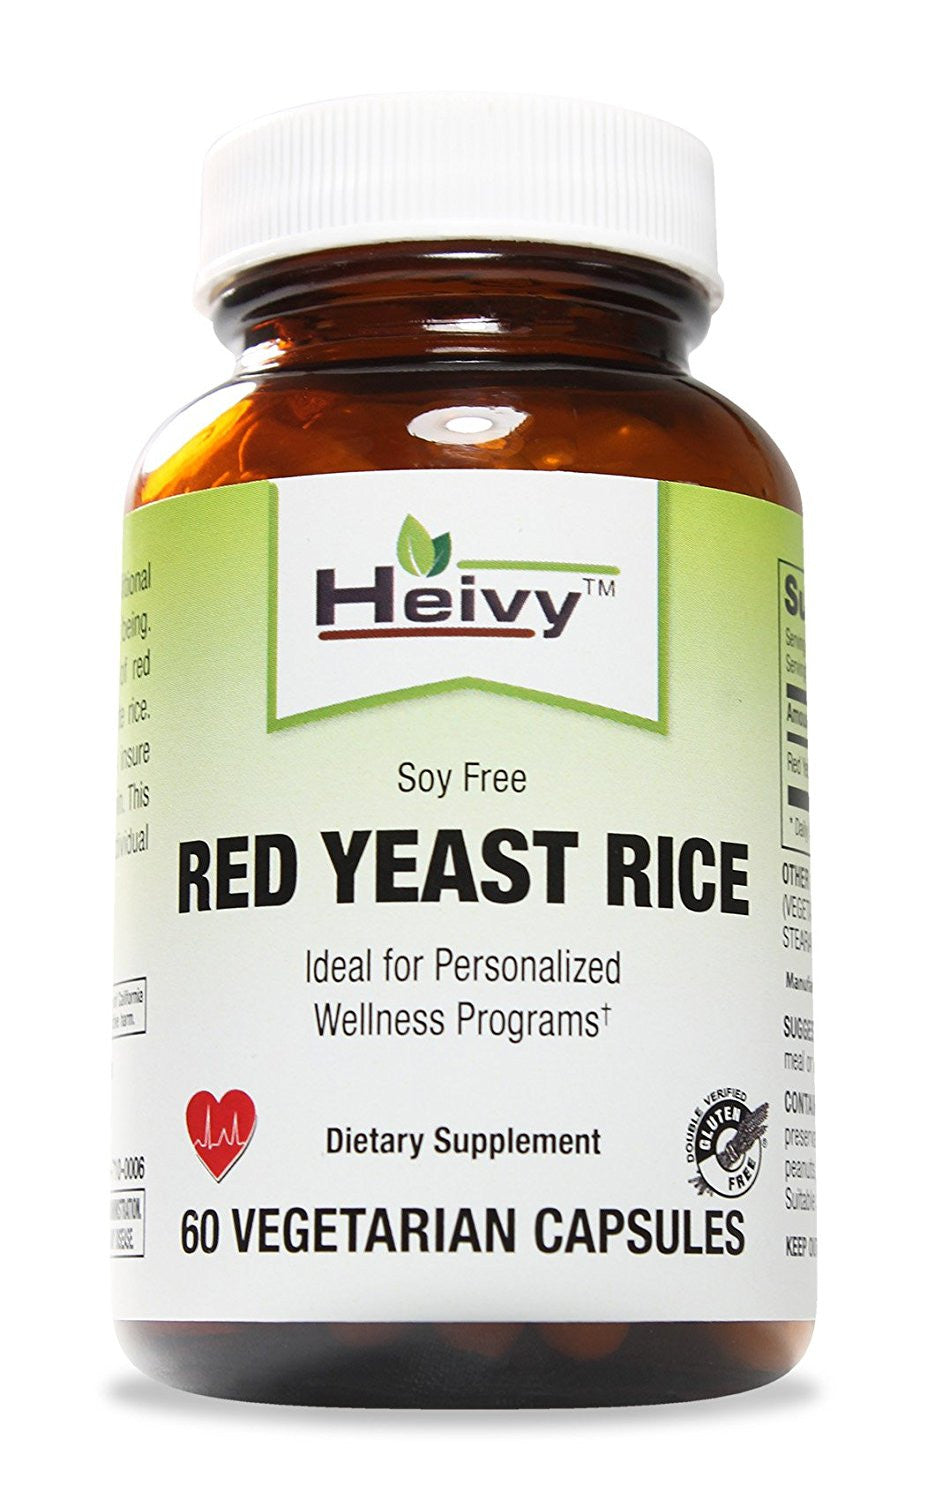 Red Yeast Rice, Soy Free, 60 Veg Caps